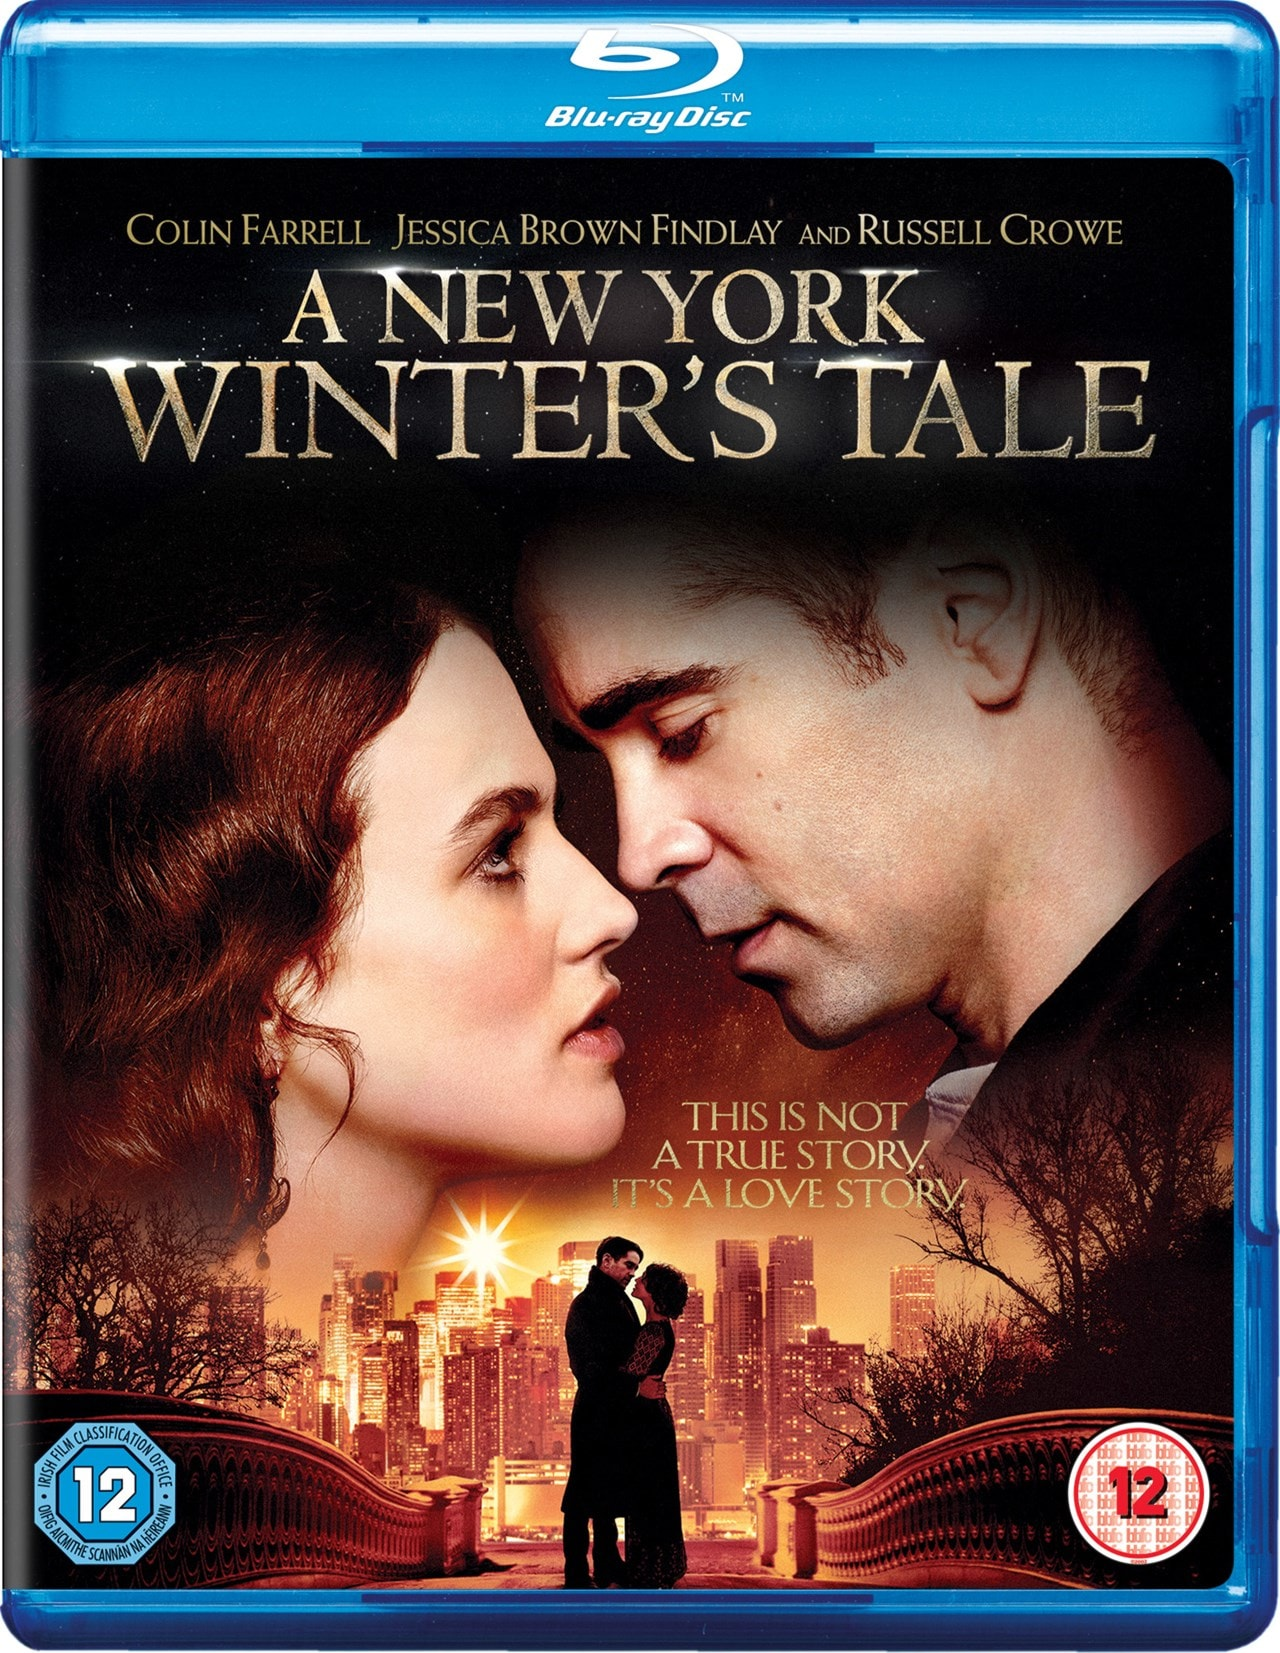 A New York Winter's Tale - 1